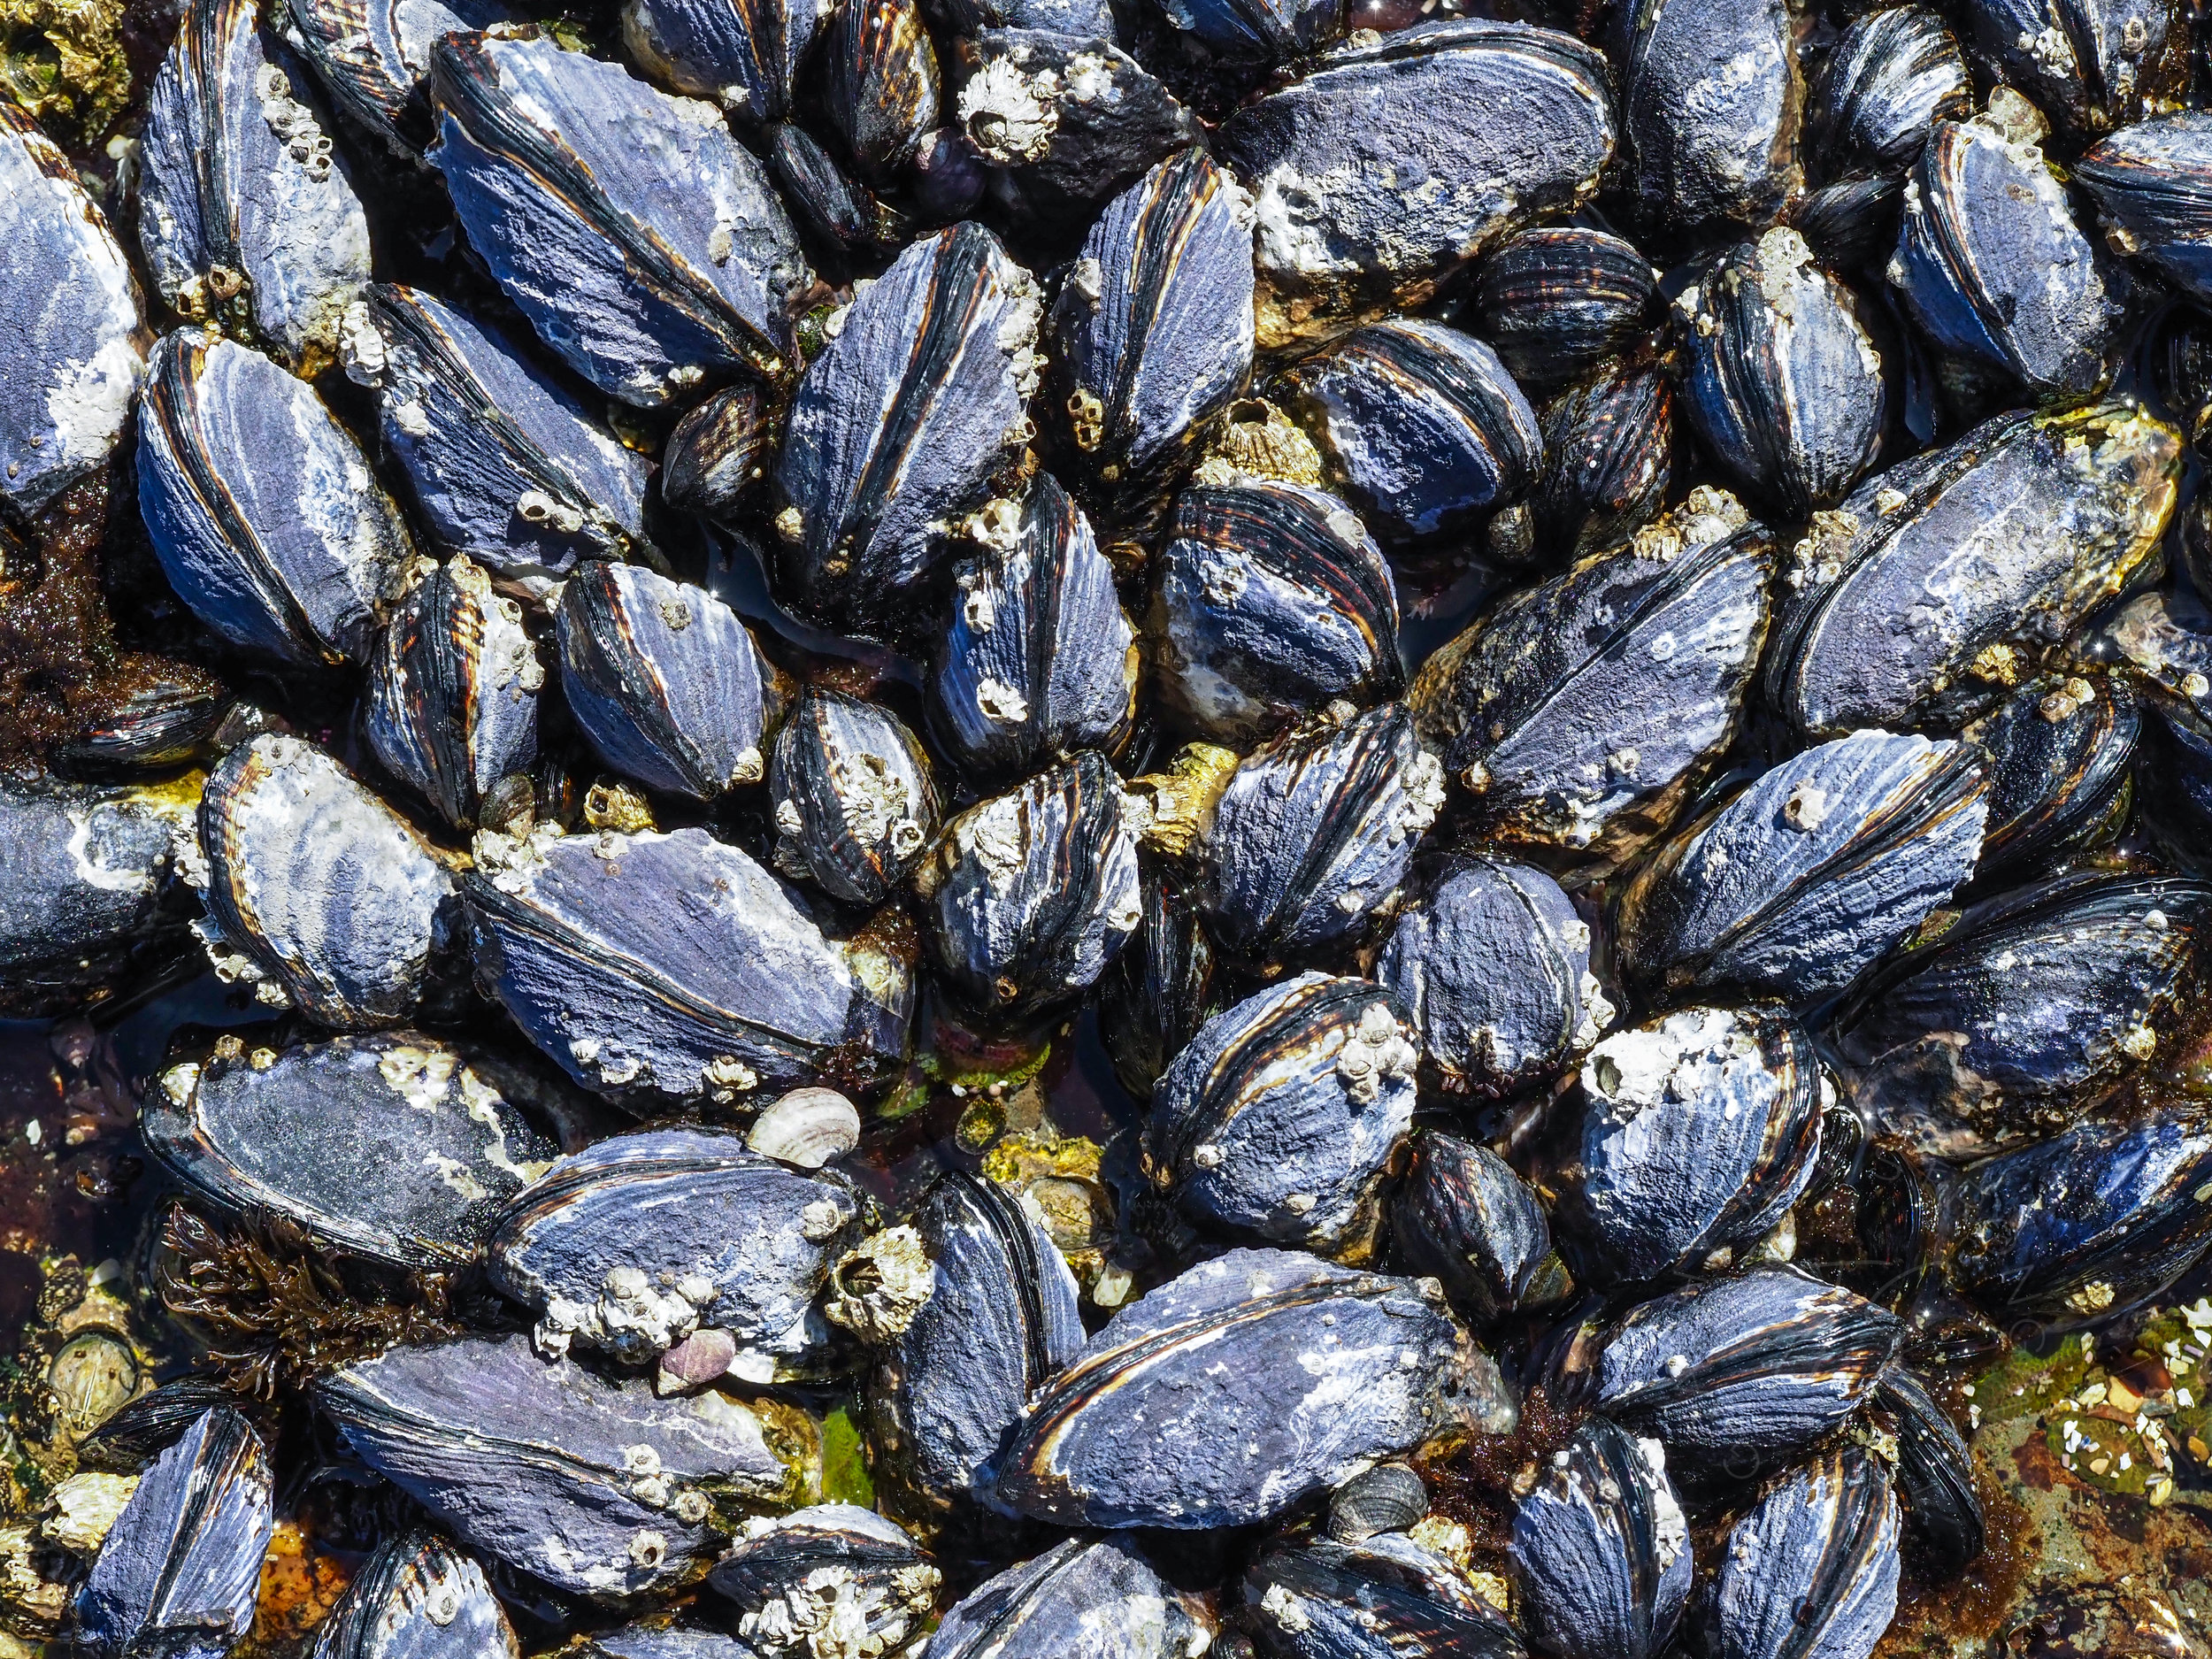 It feels like there are miles of California Mussels at Tongue Point Marine Reserve